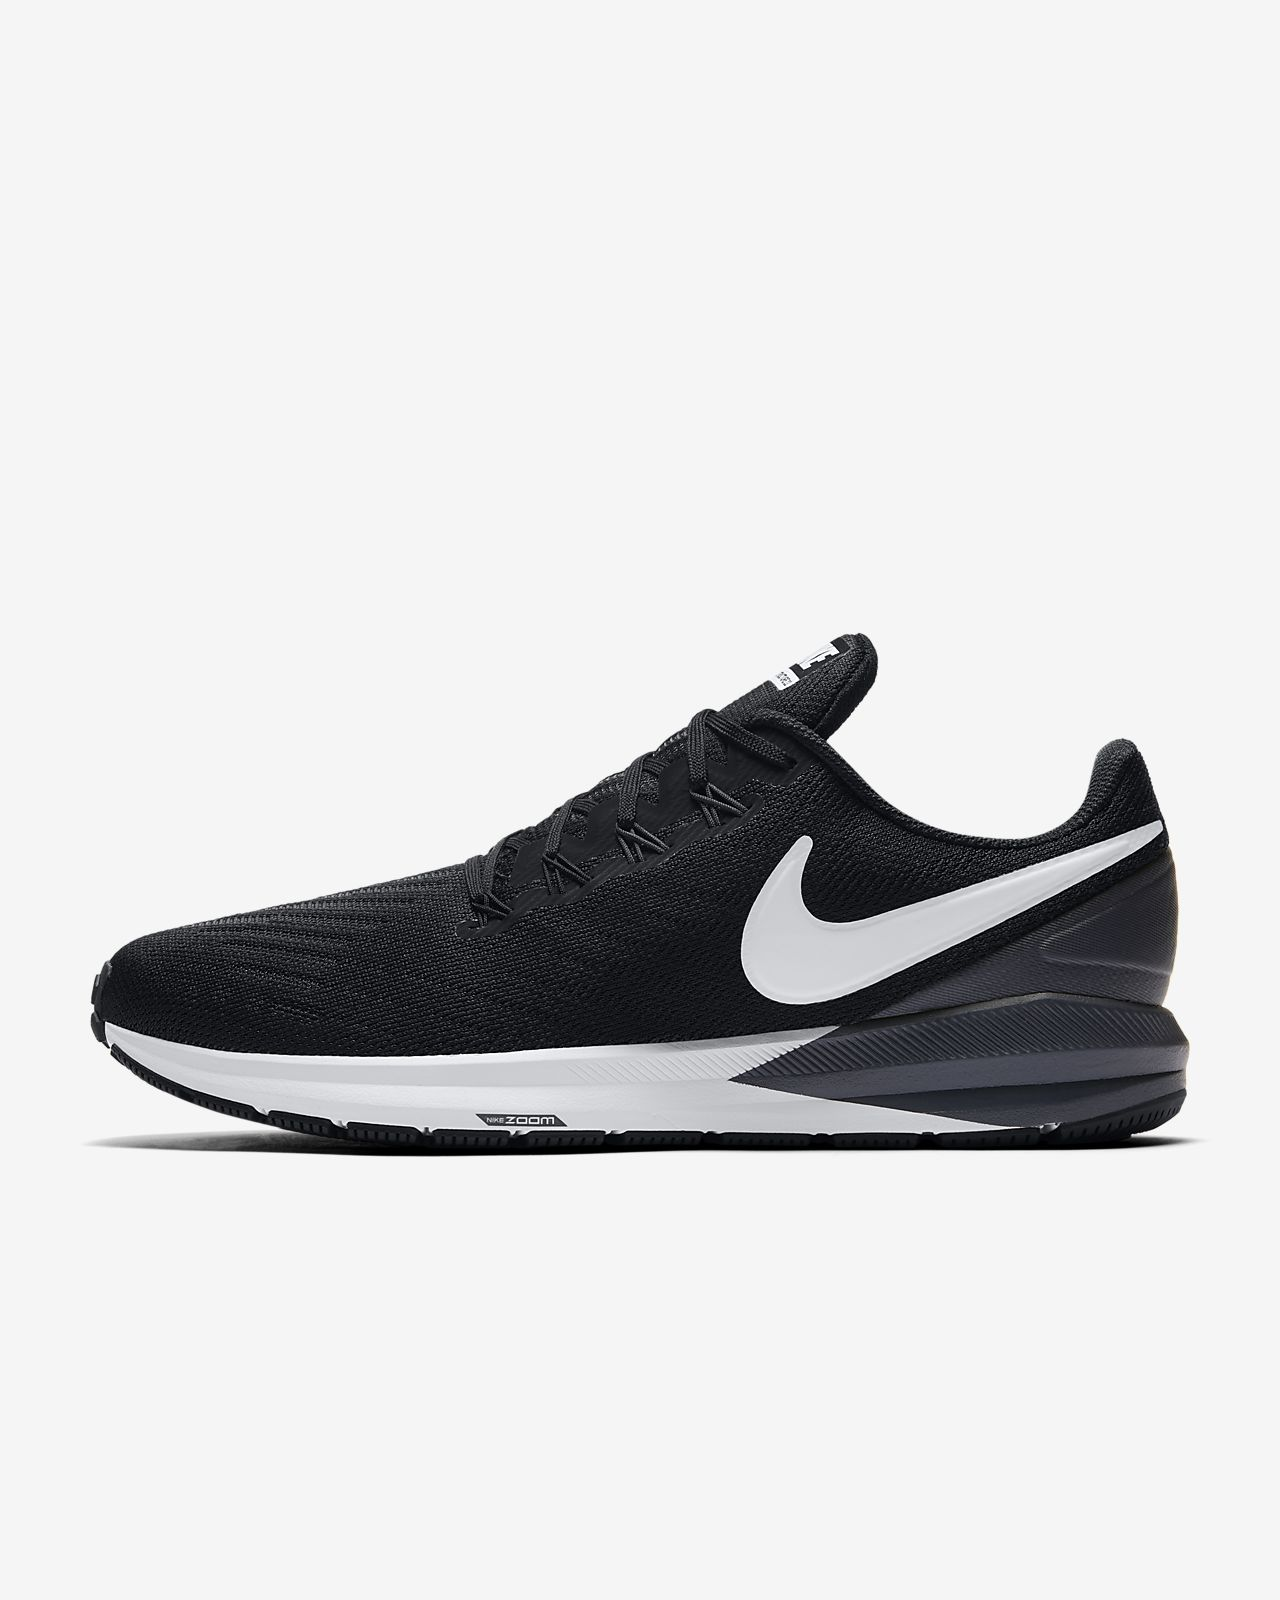 NIKE AIR ZOOM Structure 20,Damen,Runningschuh,Fitness,Größe